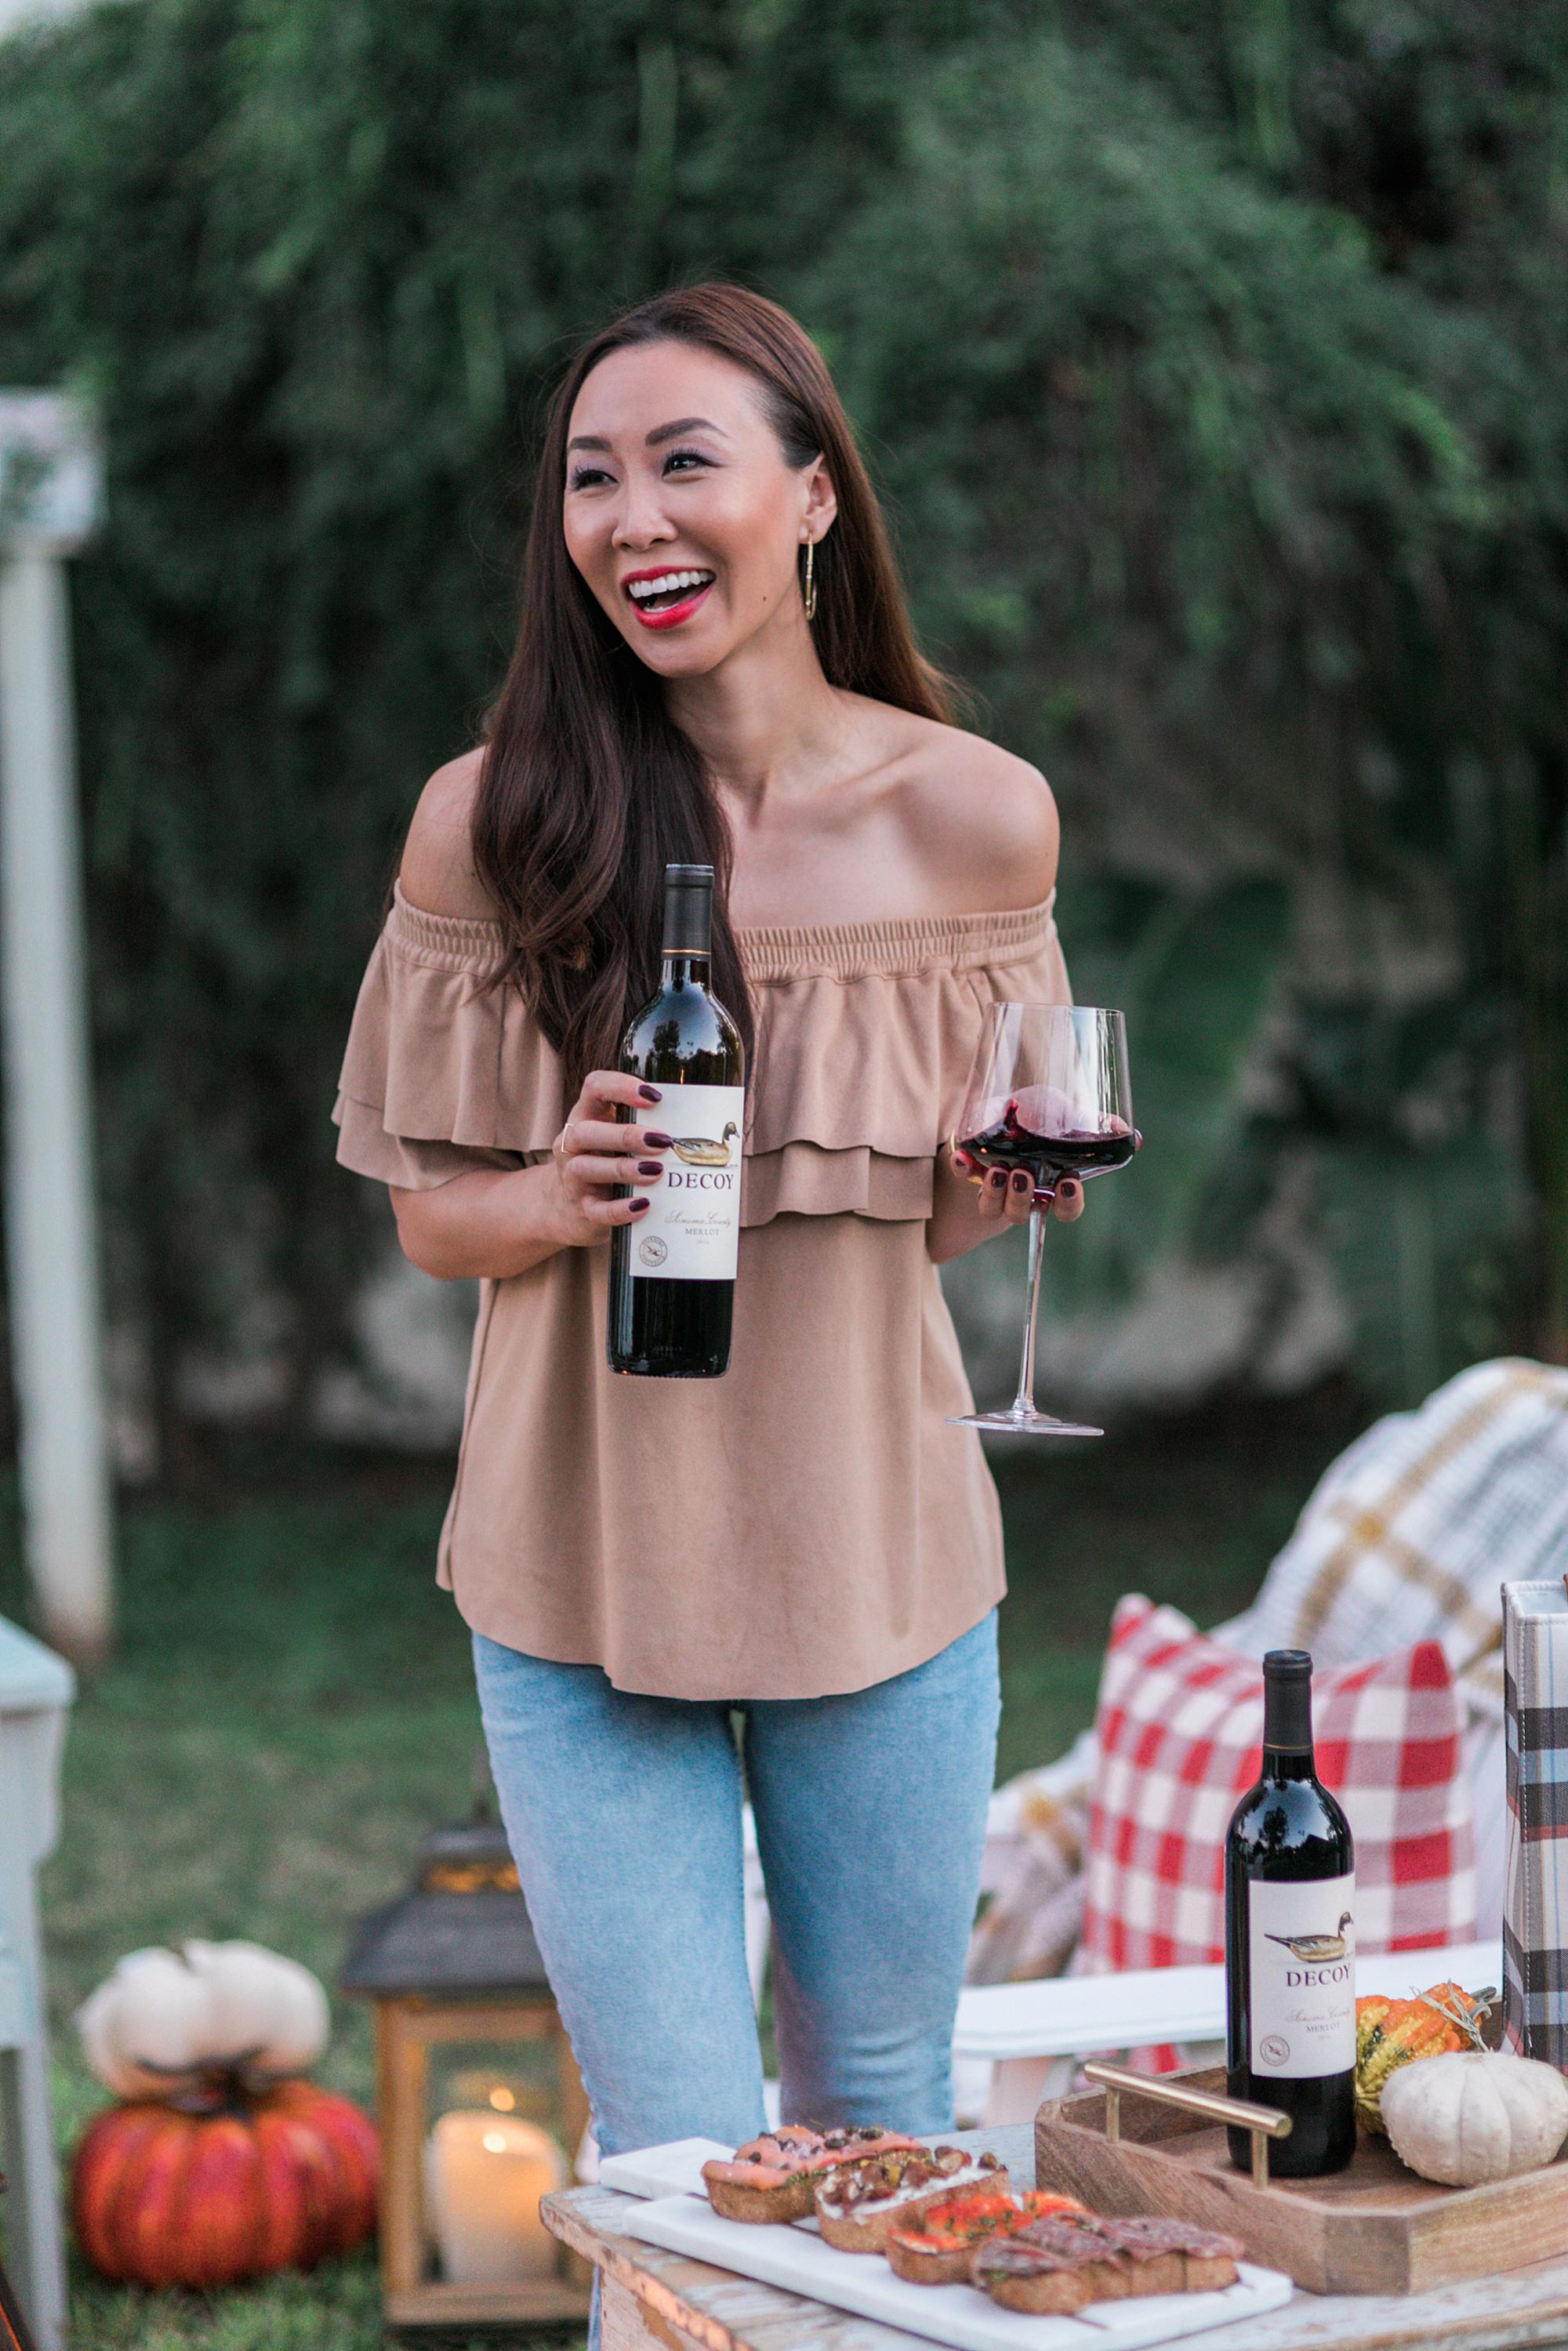 decoy wine merlot to celebrate merlot month of October! backyard setup with fire pit and bruschetta boards with blogger Diana Elizabeth - hay bales pumpkins, gourds and cozy blankets and pillows